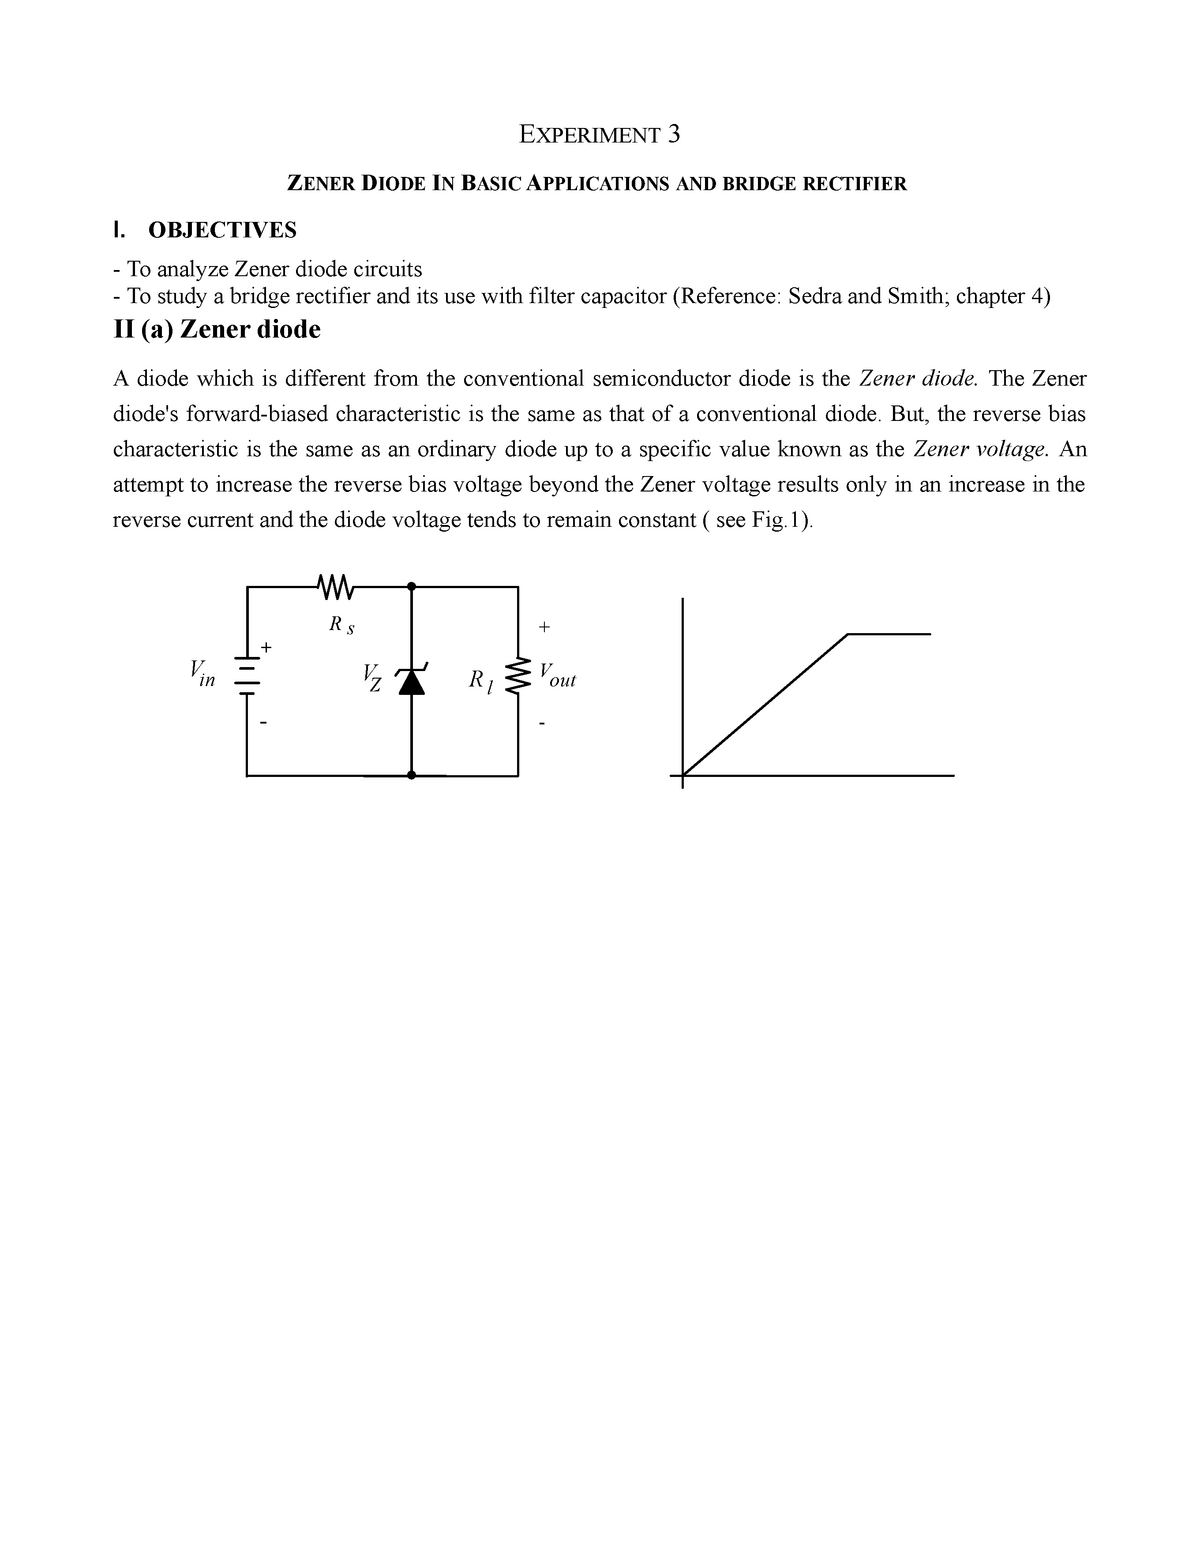 Seminar assignments - pspice lab 3 - zener diode in basic